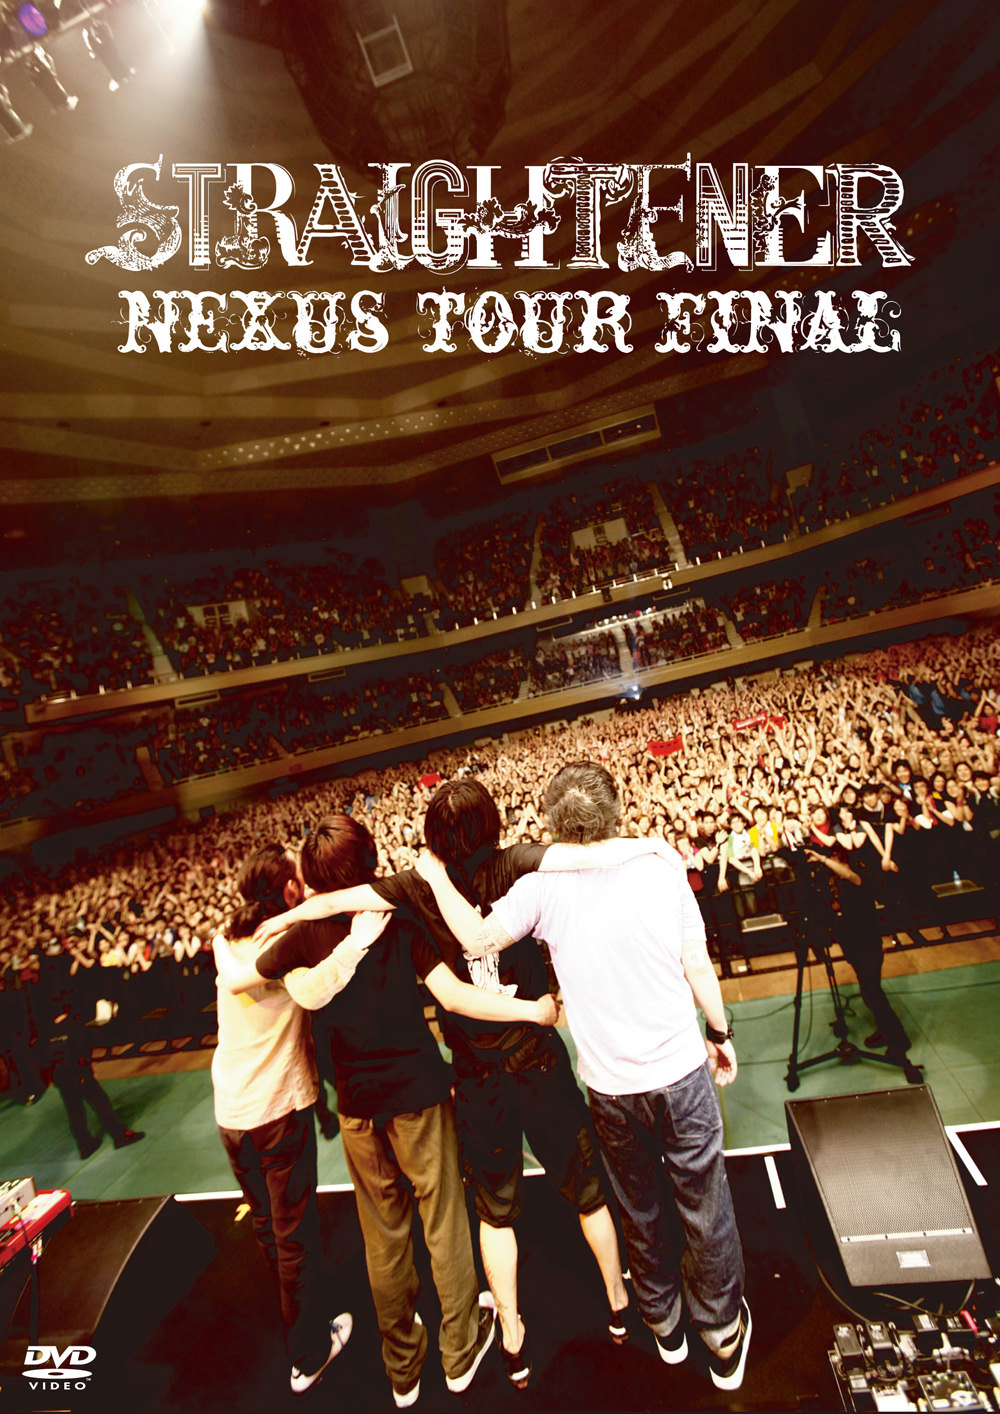 NEXUS TOUR FINAL